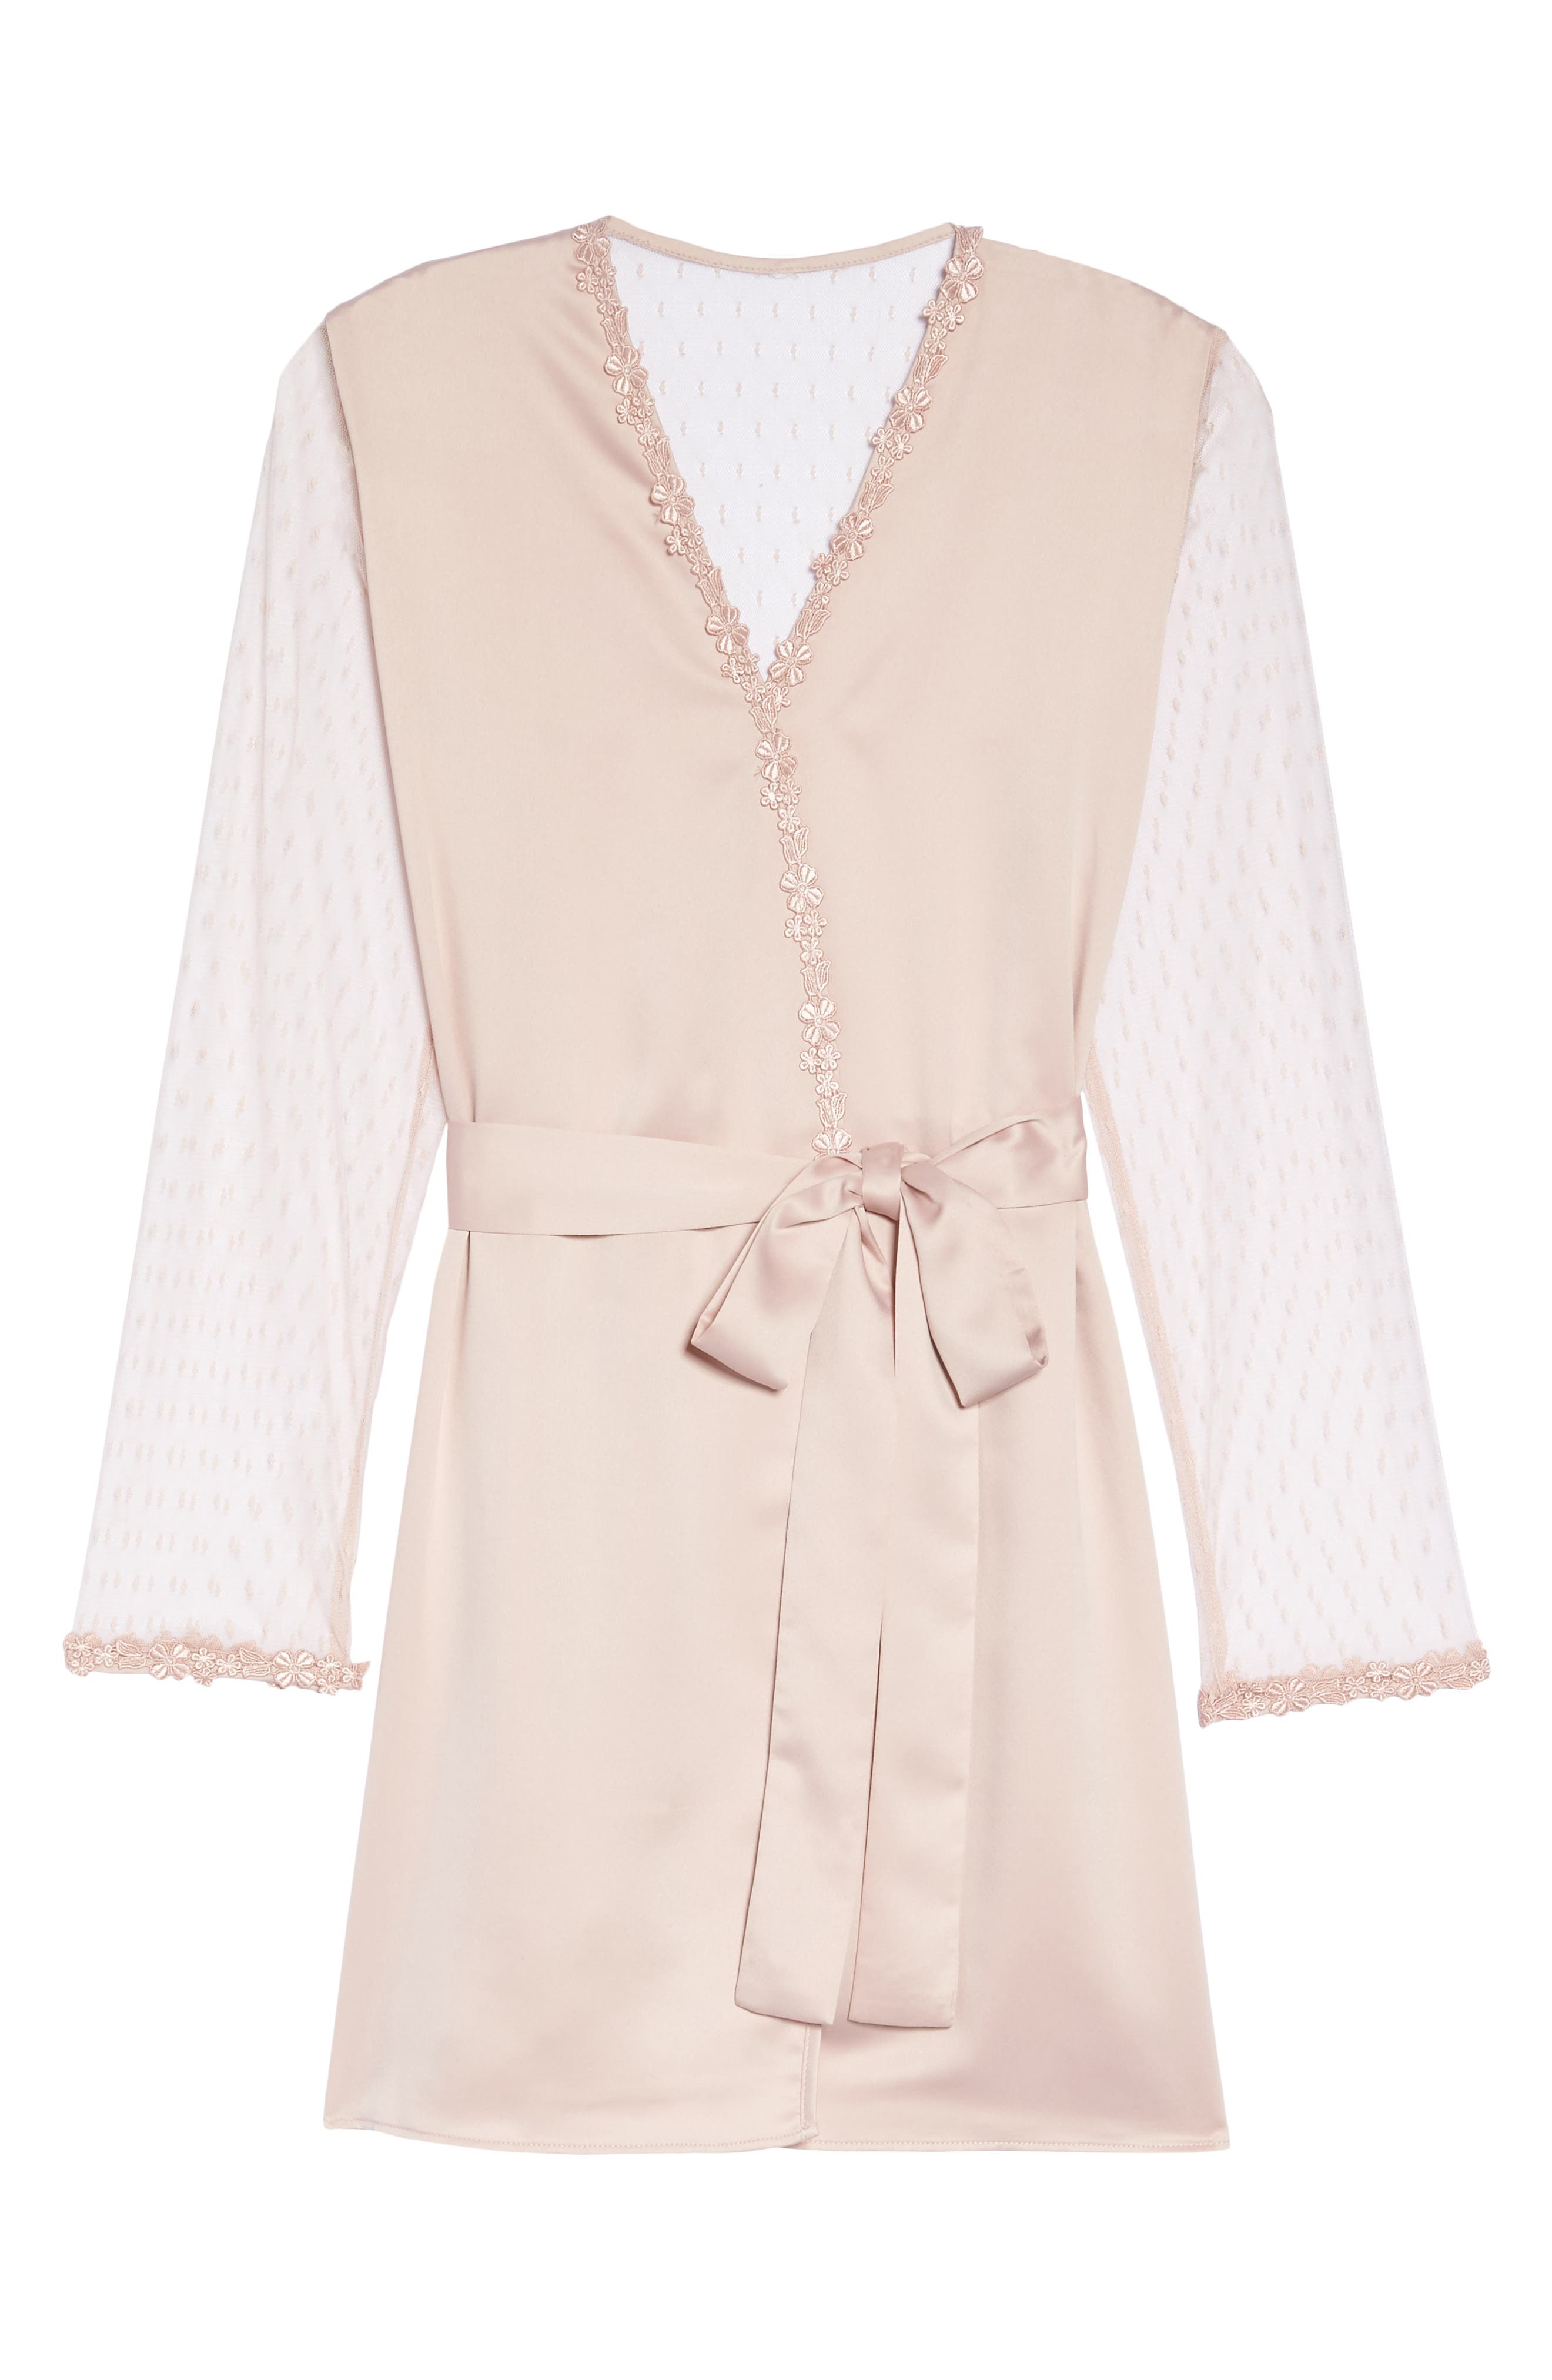 Showstopper Robe,                             Alternate thumbnail 4, color,                             Shell Pink